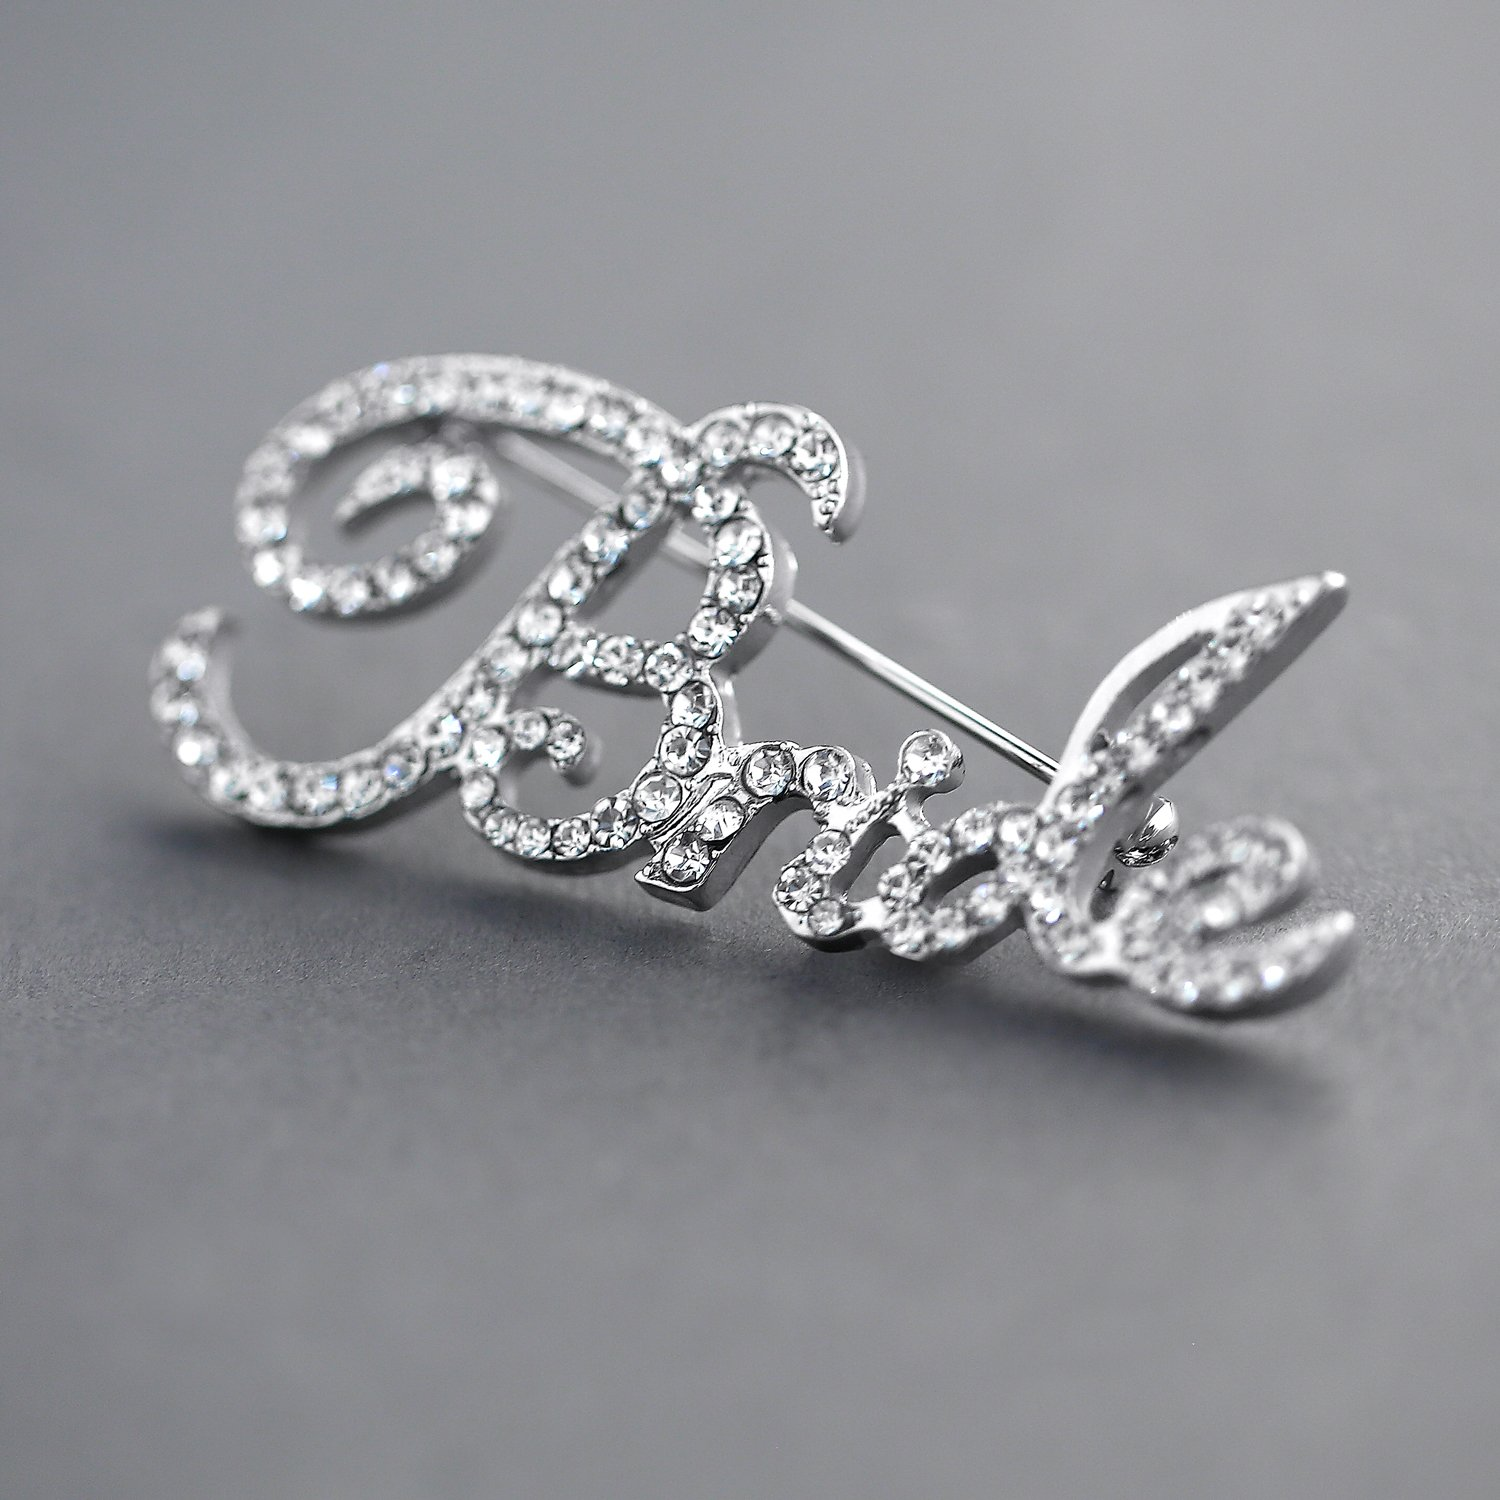 Mariell Crystal Rhinestone Bride Brooch Pin in Script Lettering - Bachelorette & Bridal Shower Gift! by Mariell (Image #5)